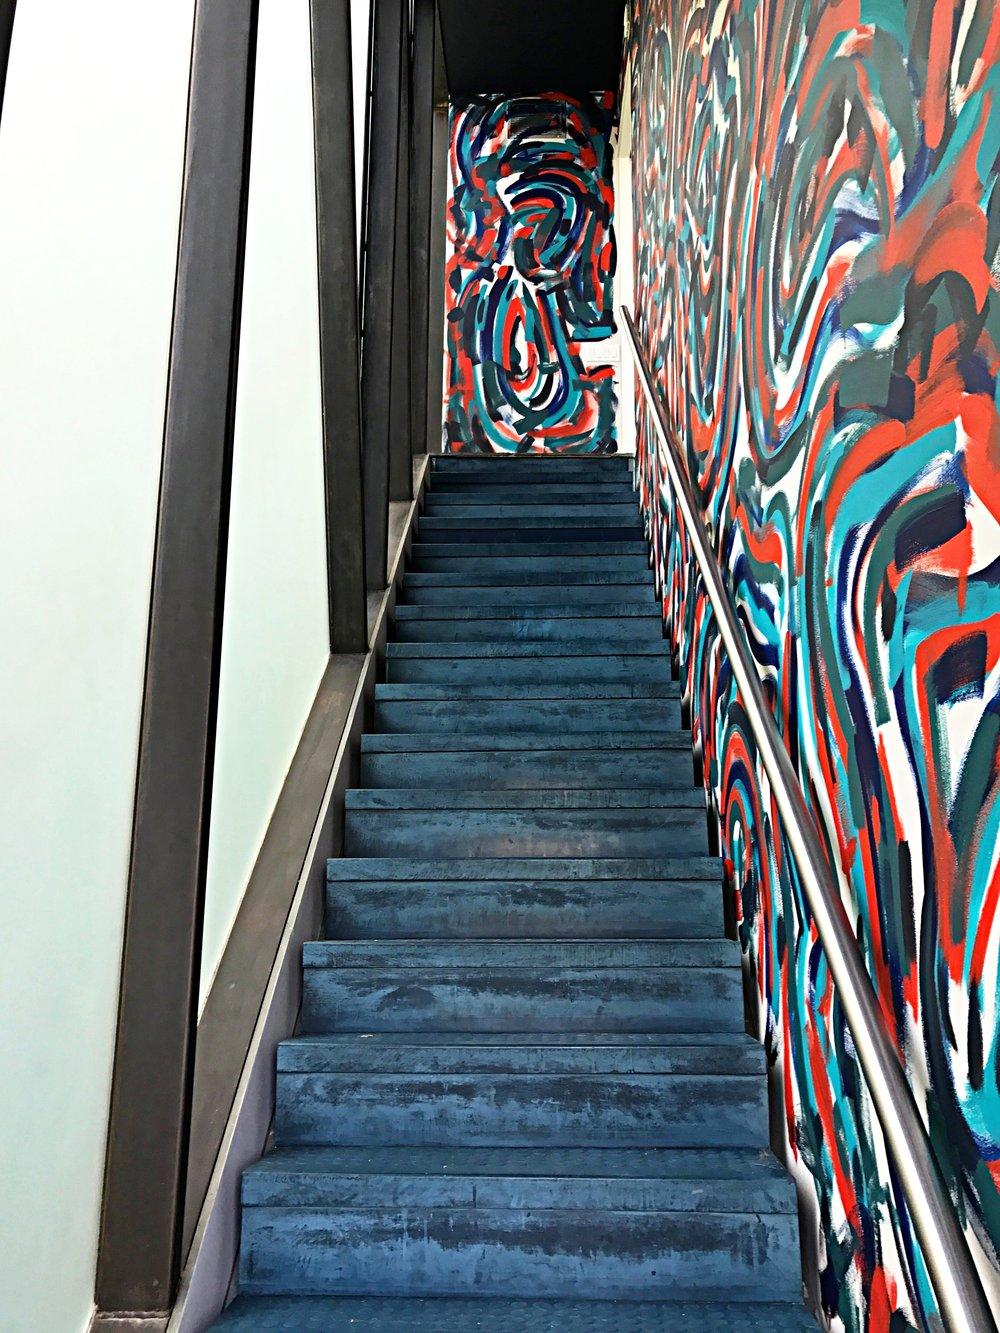 Chainsmokers+-+Stair+Mural+1.jpg